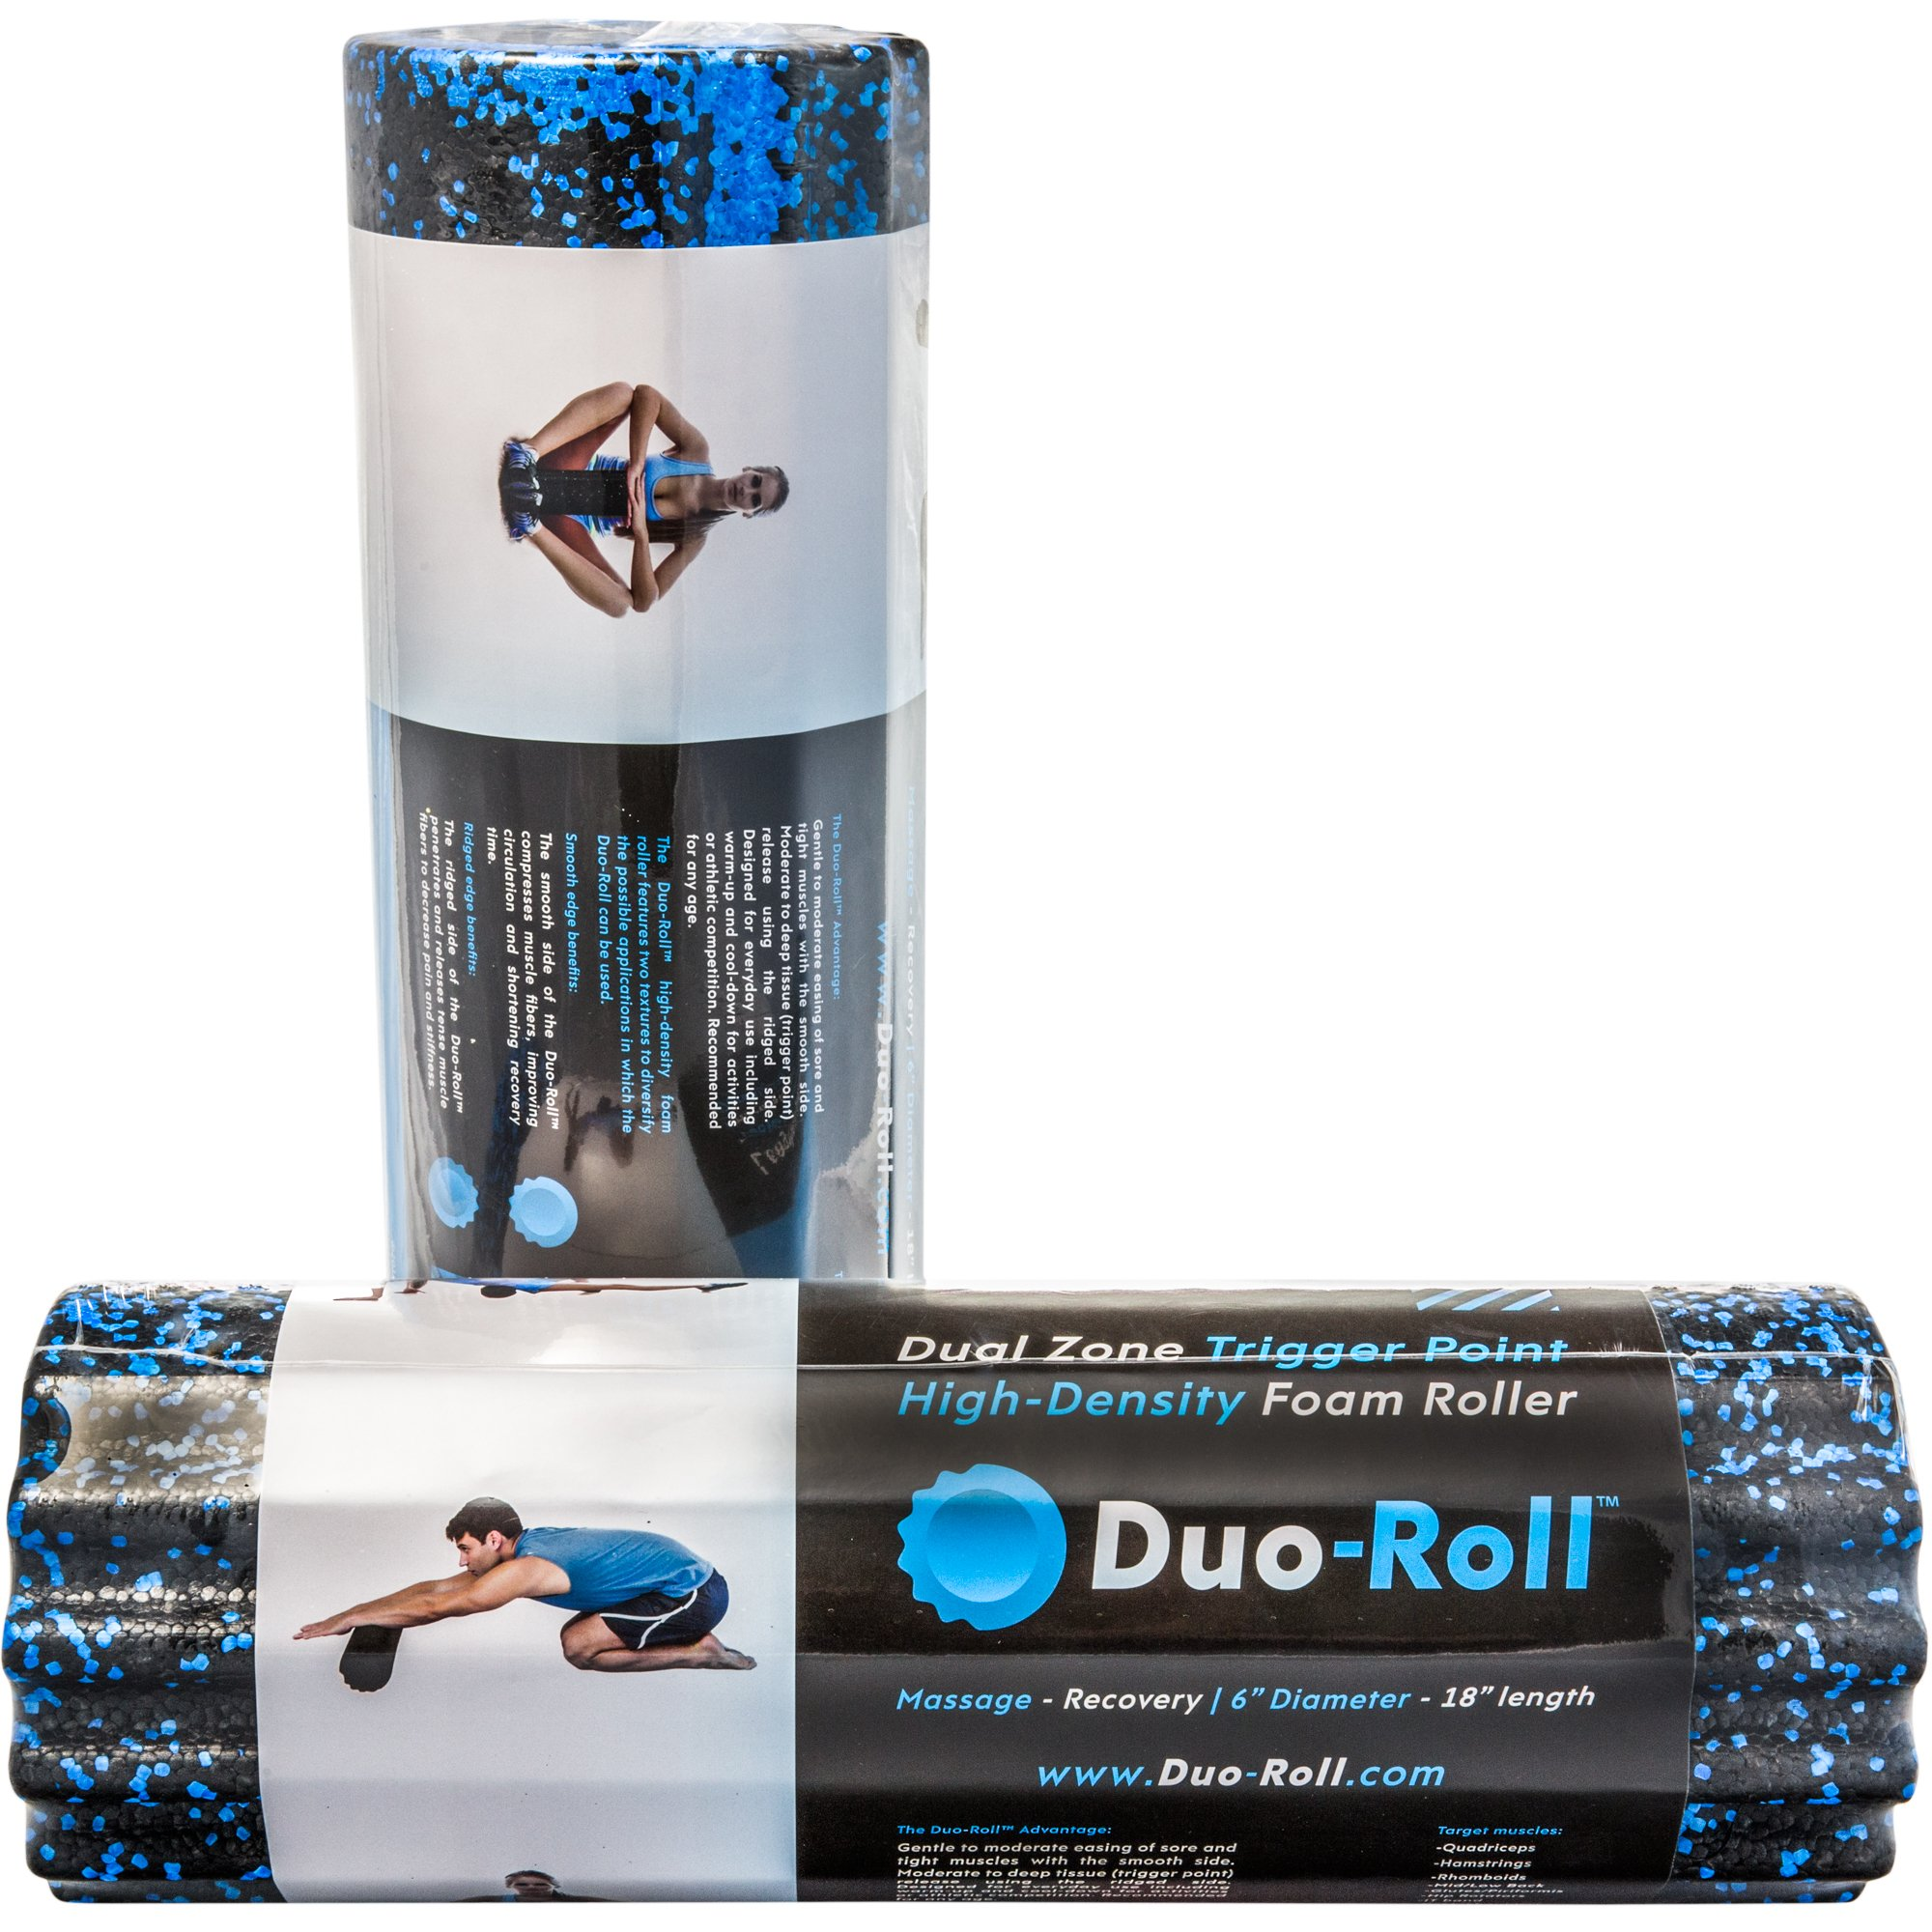 j/fit Duo-Roll High Density Dual Zone Trigger Point Foam Roller | Durable & Ergonomic Construction for Deep Tissue Massage | Smooth Side for Muscle Therapy/Ridged Side for Pain Relief (20-0615)